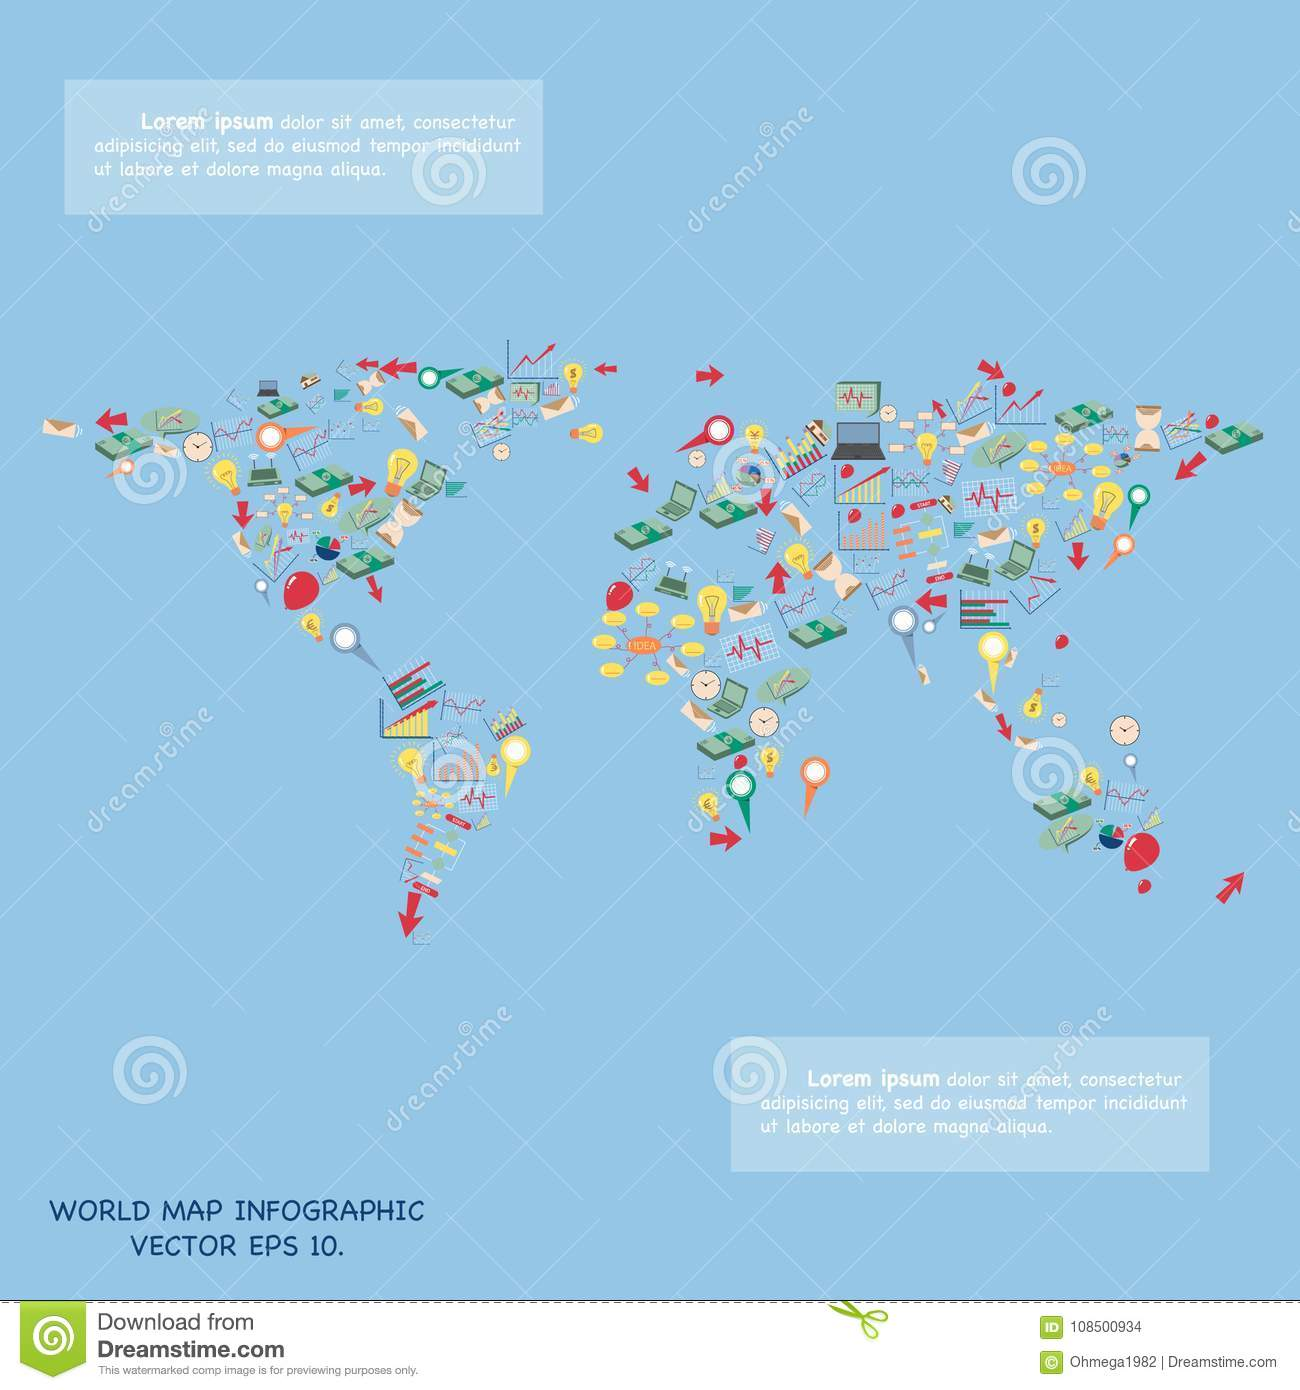 World map globe design by creative cartoon business technology and download world map globe design by creative cartoon business technology and strategy planning icons idea gumiabroncs Gallery